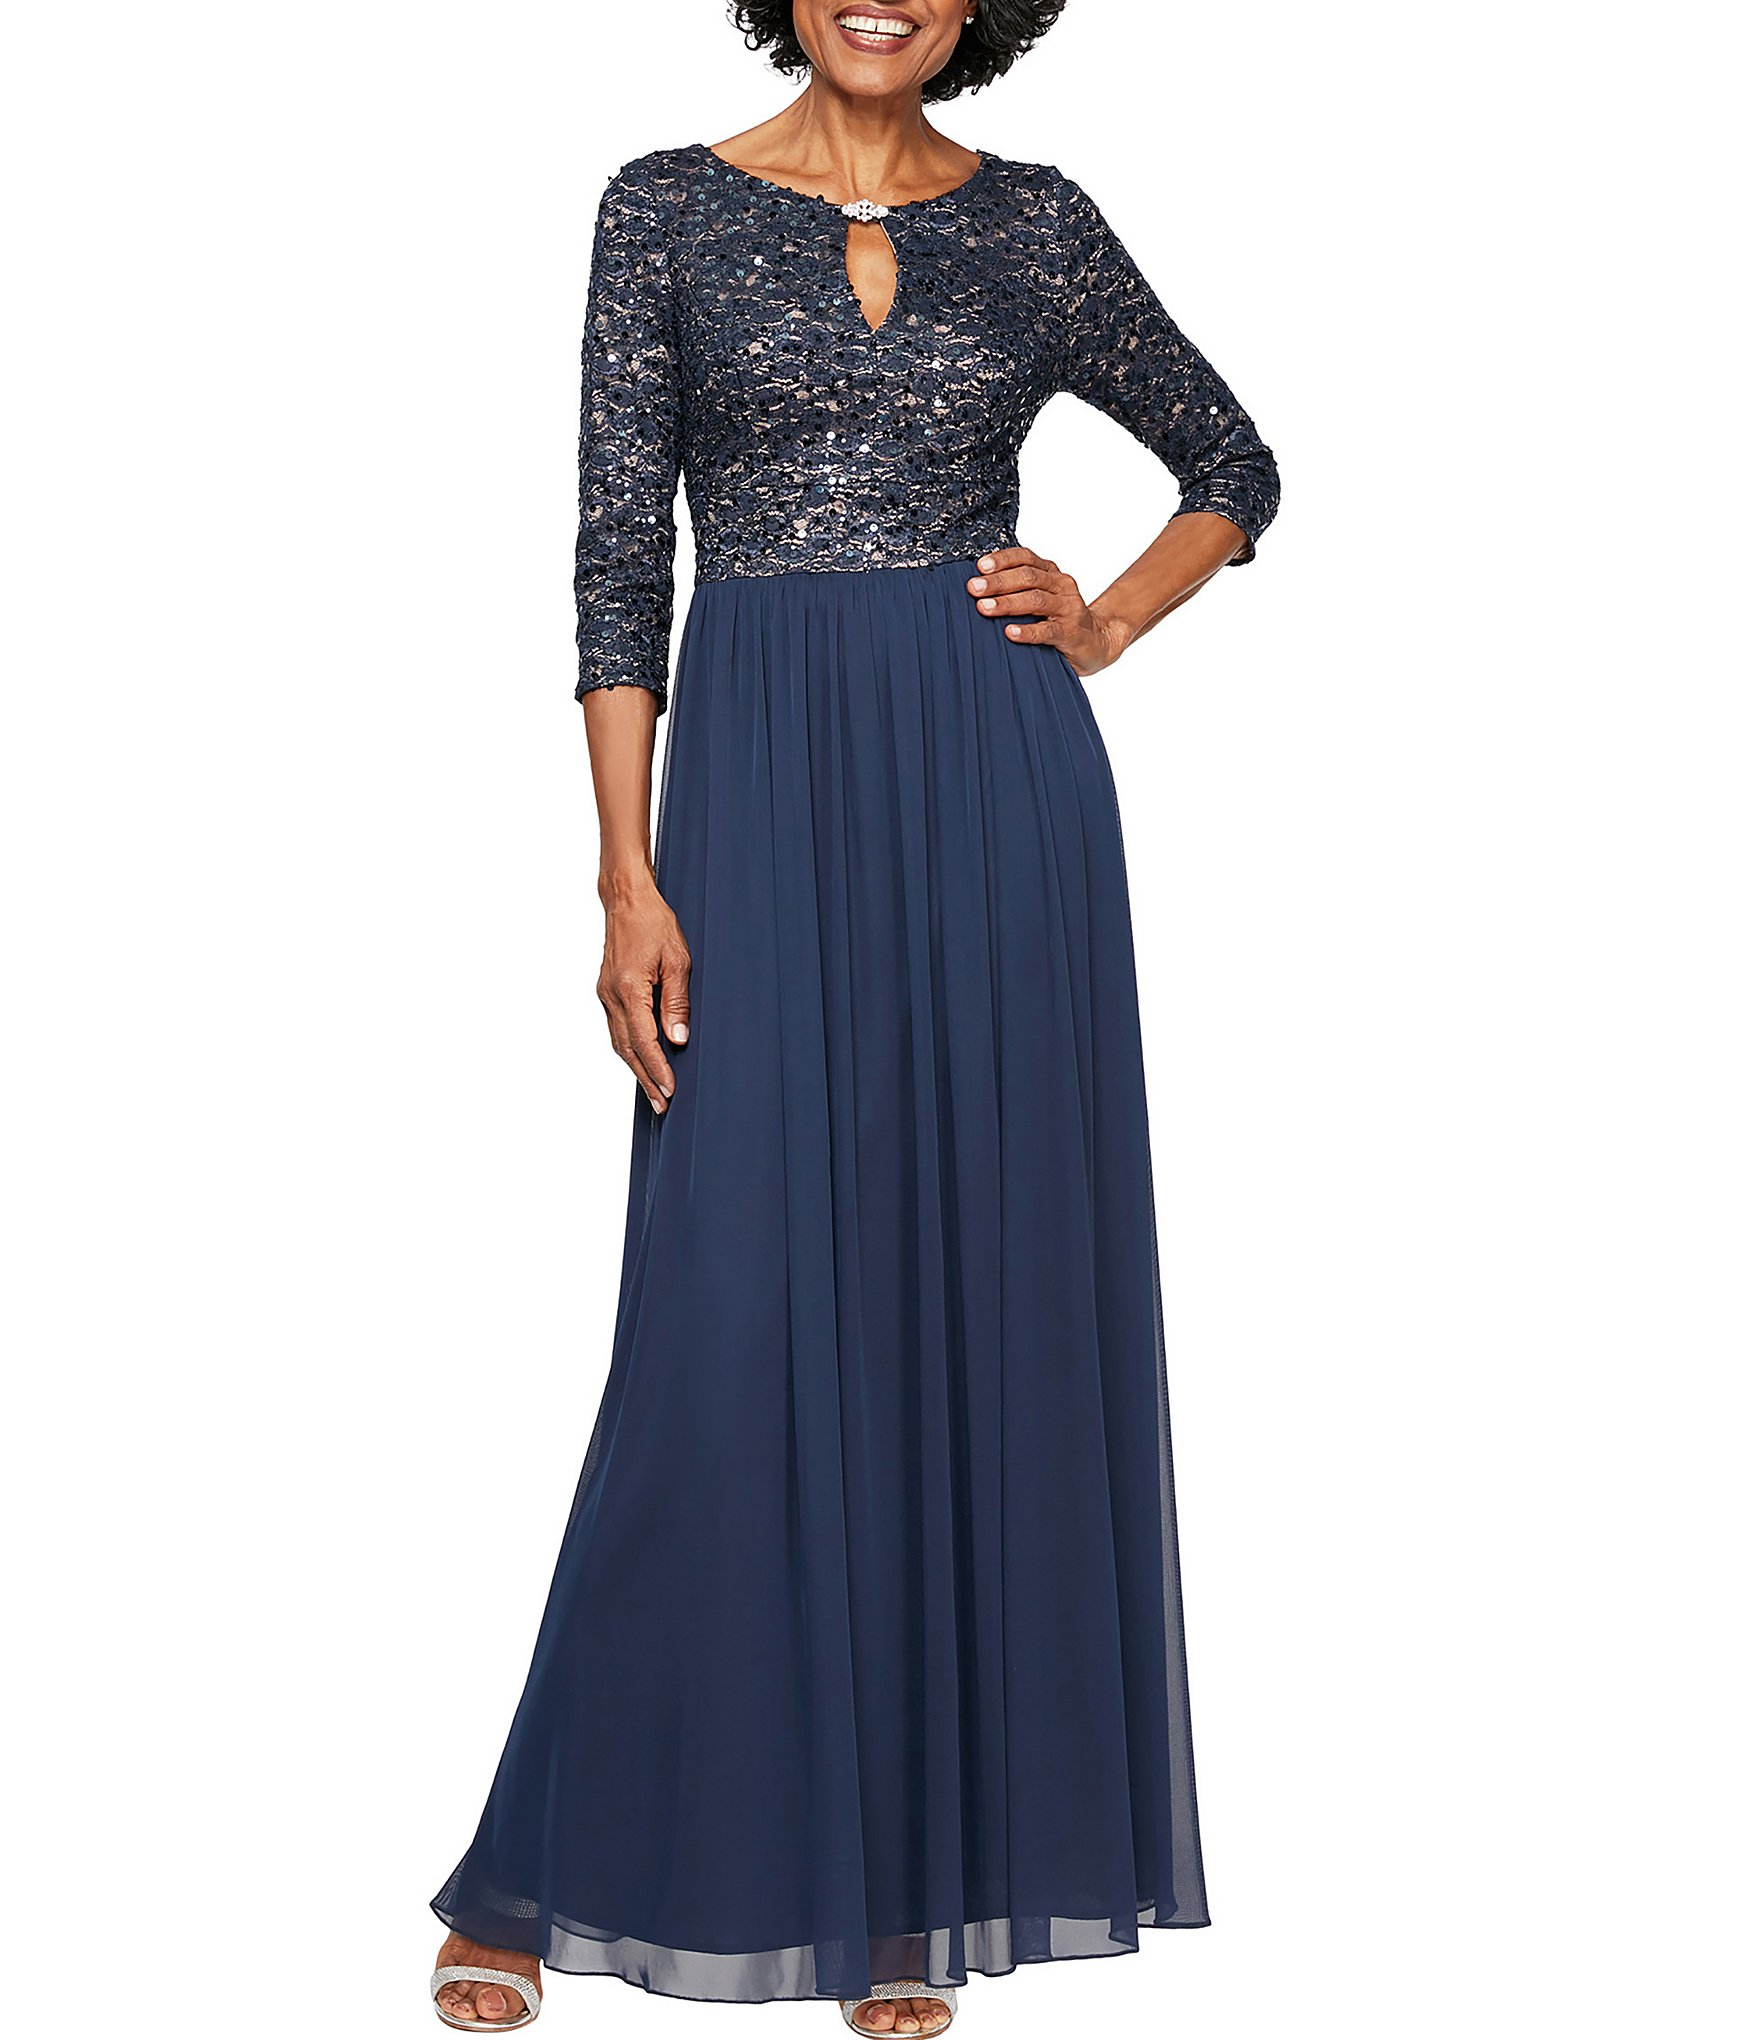 7be8b5804c284 Alex Evenings Petite Size Sequin Lace Bodice Embellished Keyhole Neck  Chiffon A-Line Gown